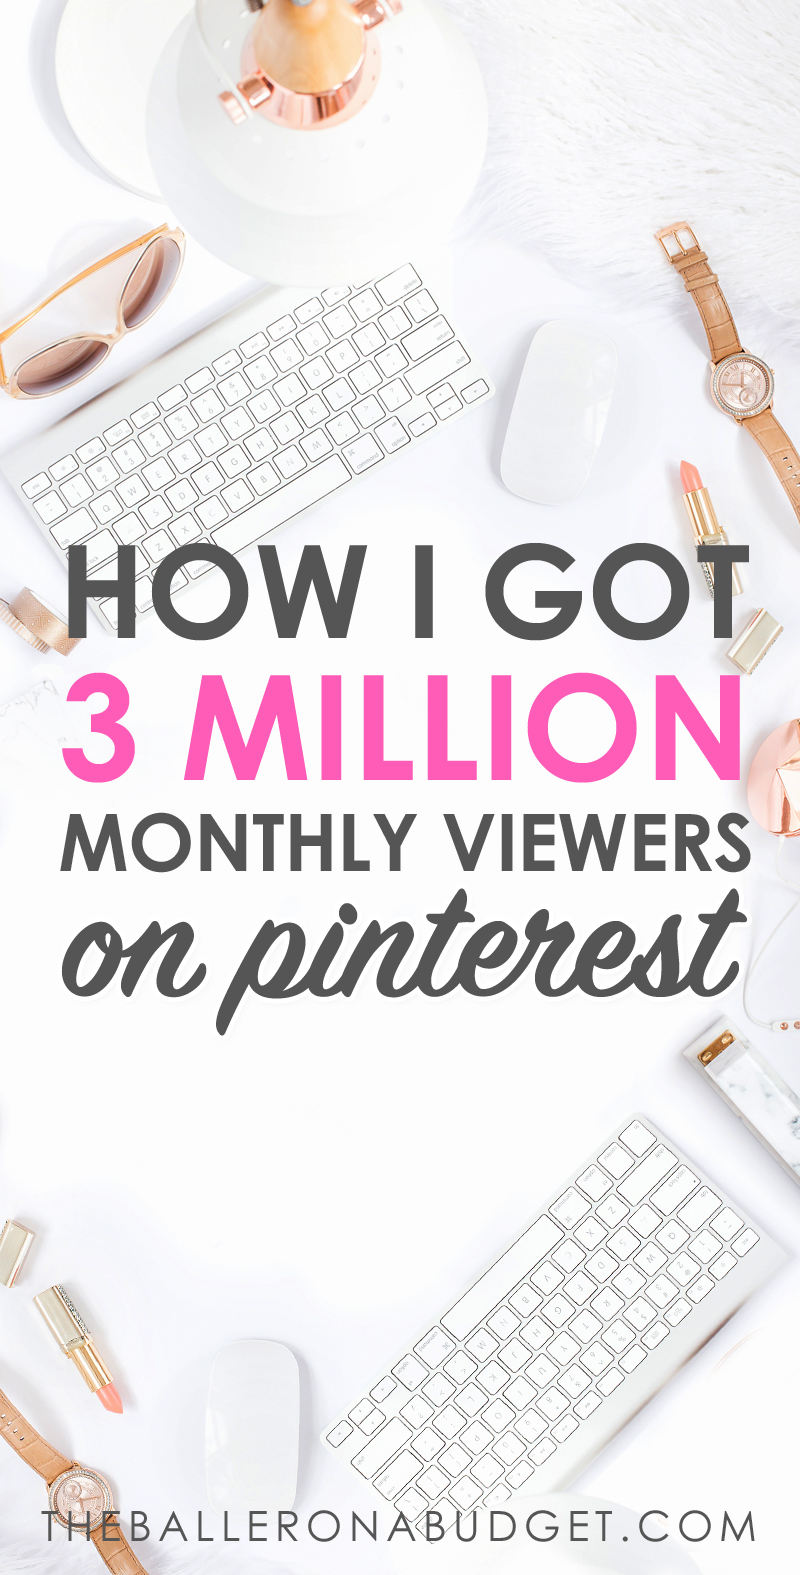 Looking to improve your Pinterest traffic? My Pinterest currently has over 3 million monthly viewers. Imagine how that translates to my blog! Pinterest is the # 1 source of traffic to my blog and is responsible for my full-time income. Click here to read how I was able to achieve this! - www.theballeronabudget.com